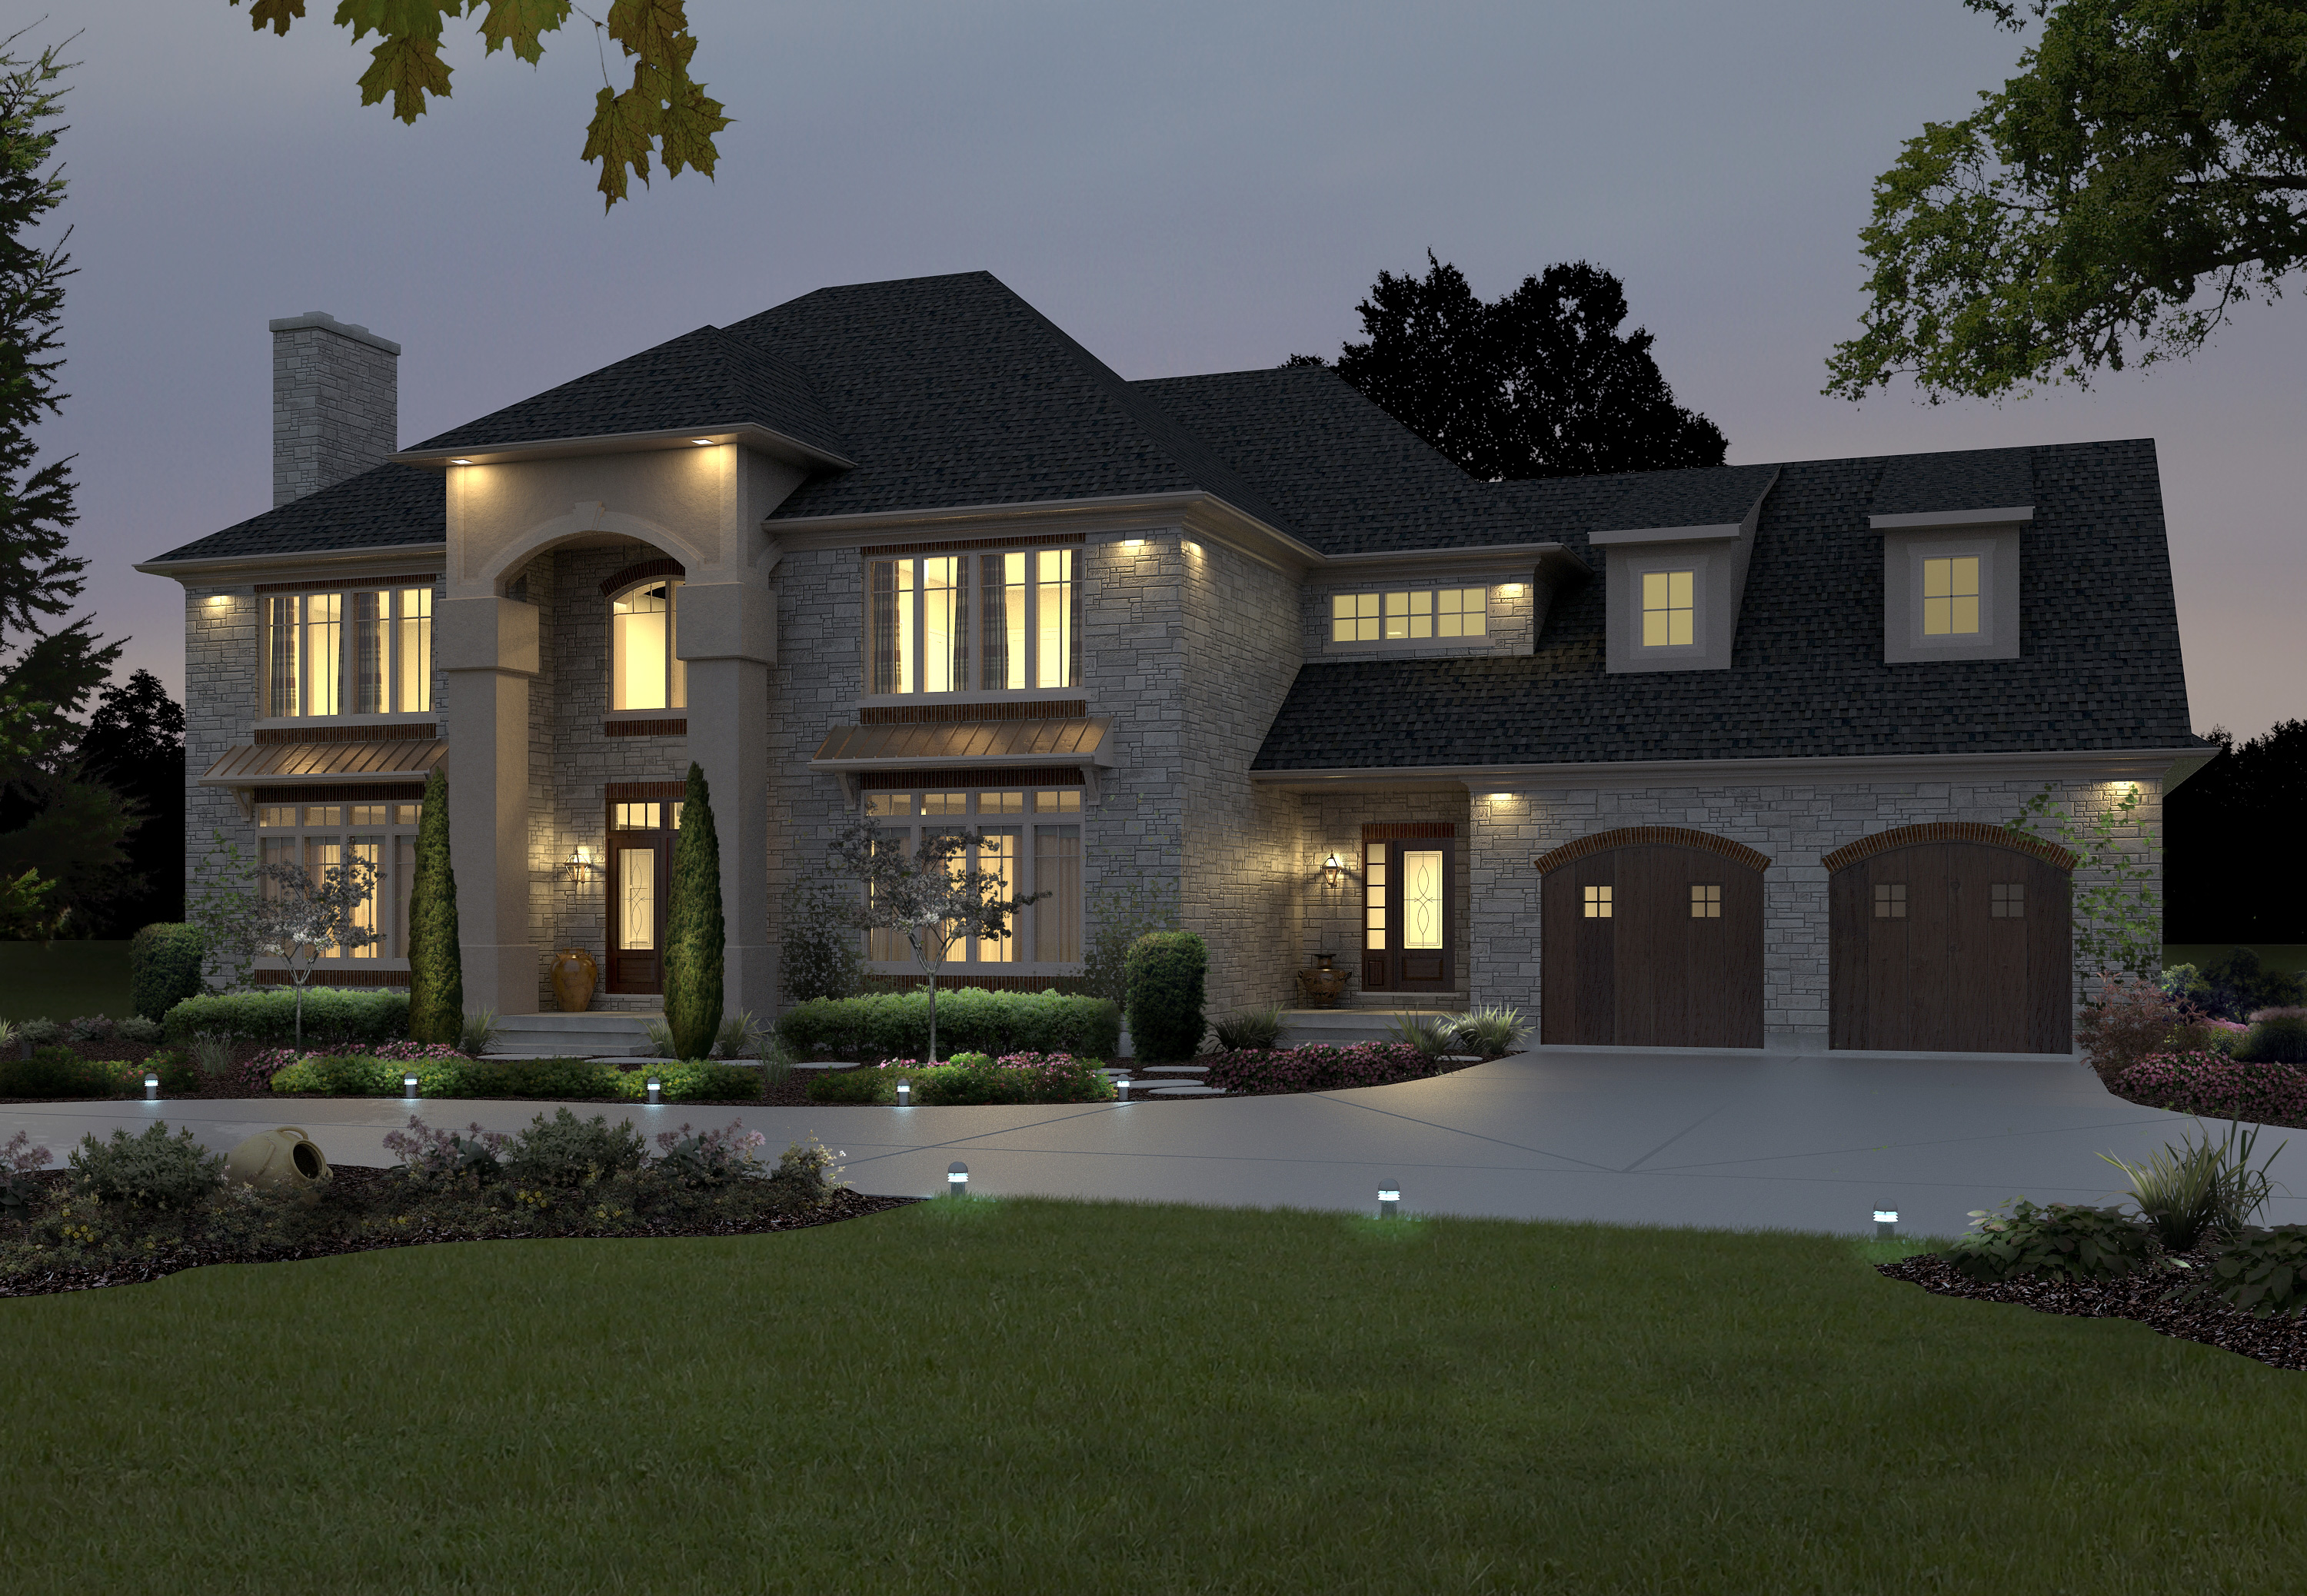 Custom home designs custom house plans custom home plans Custom build a house online